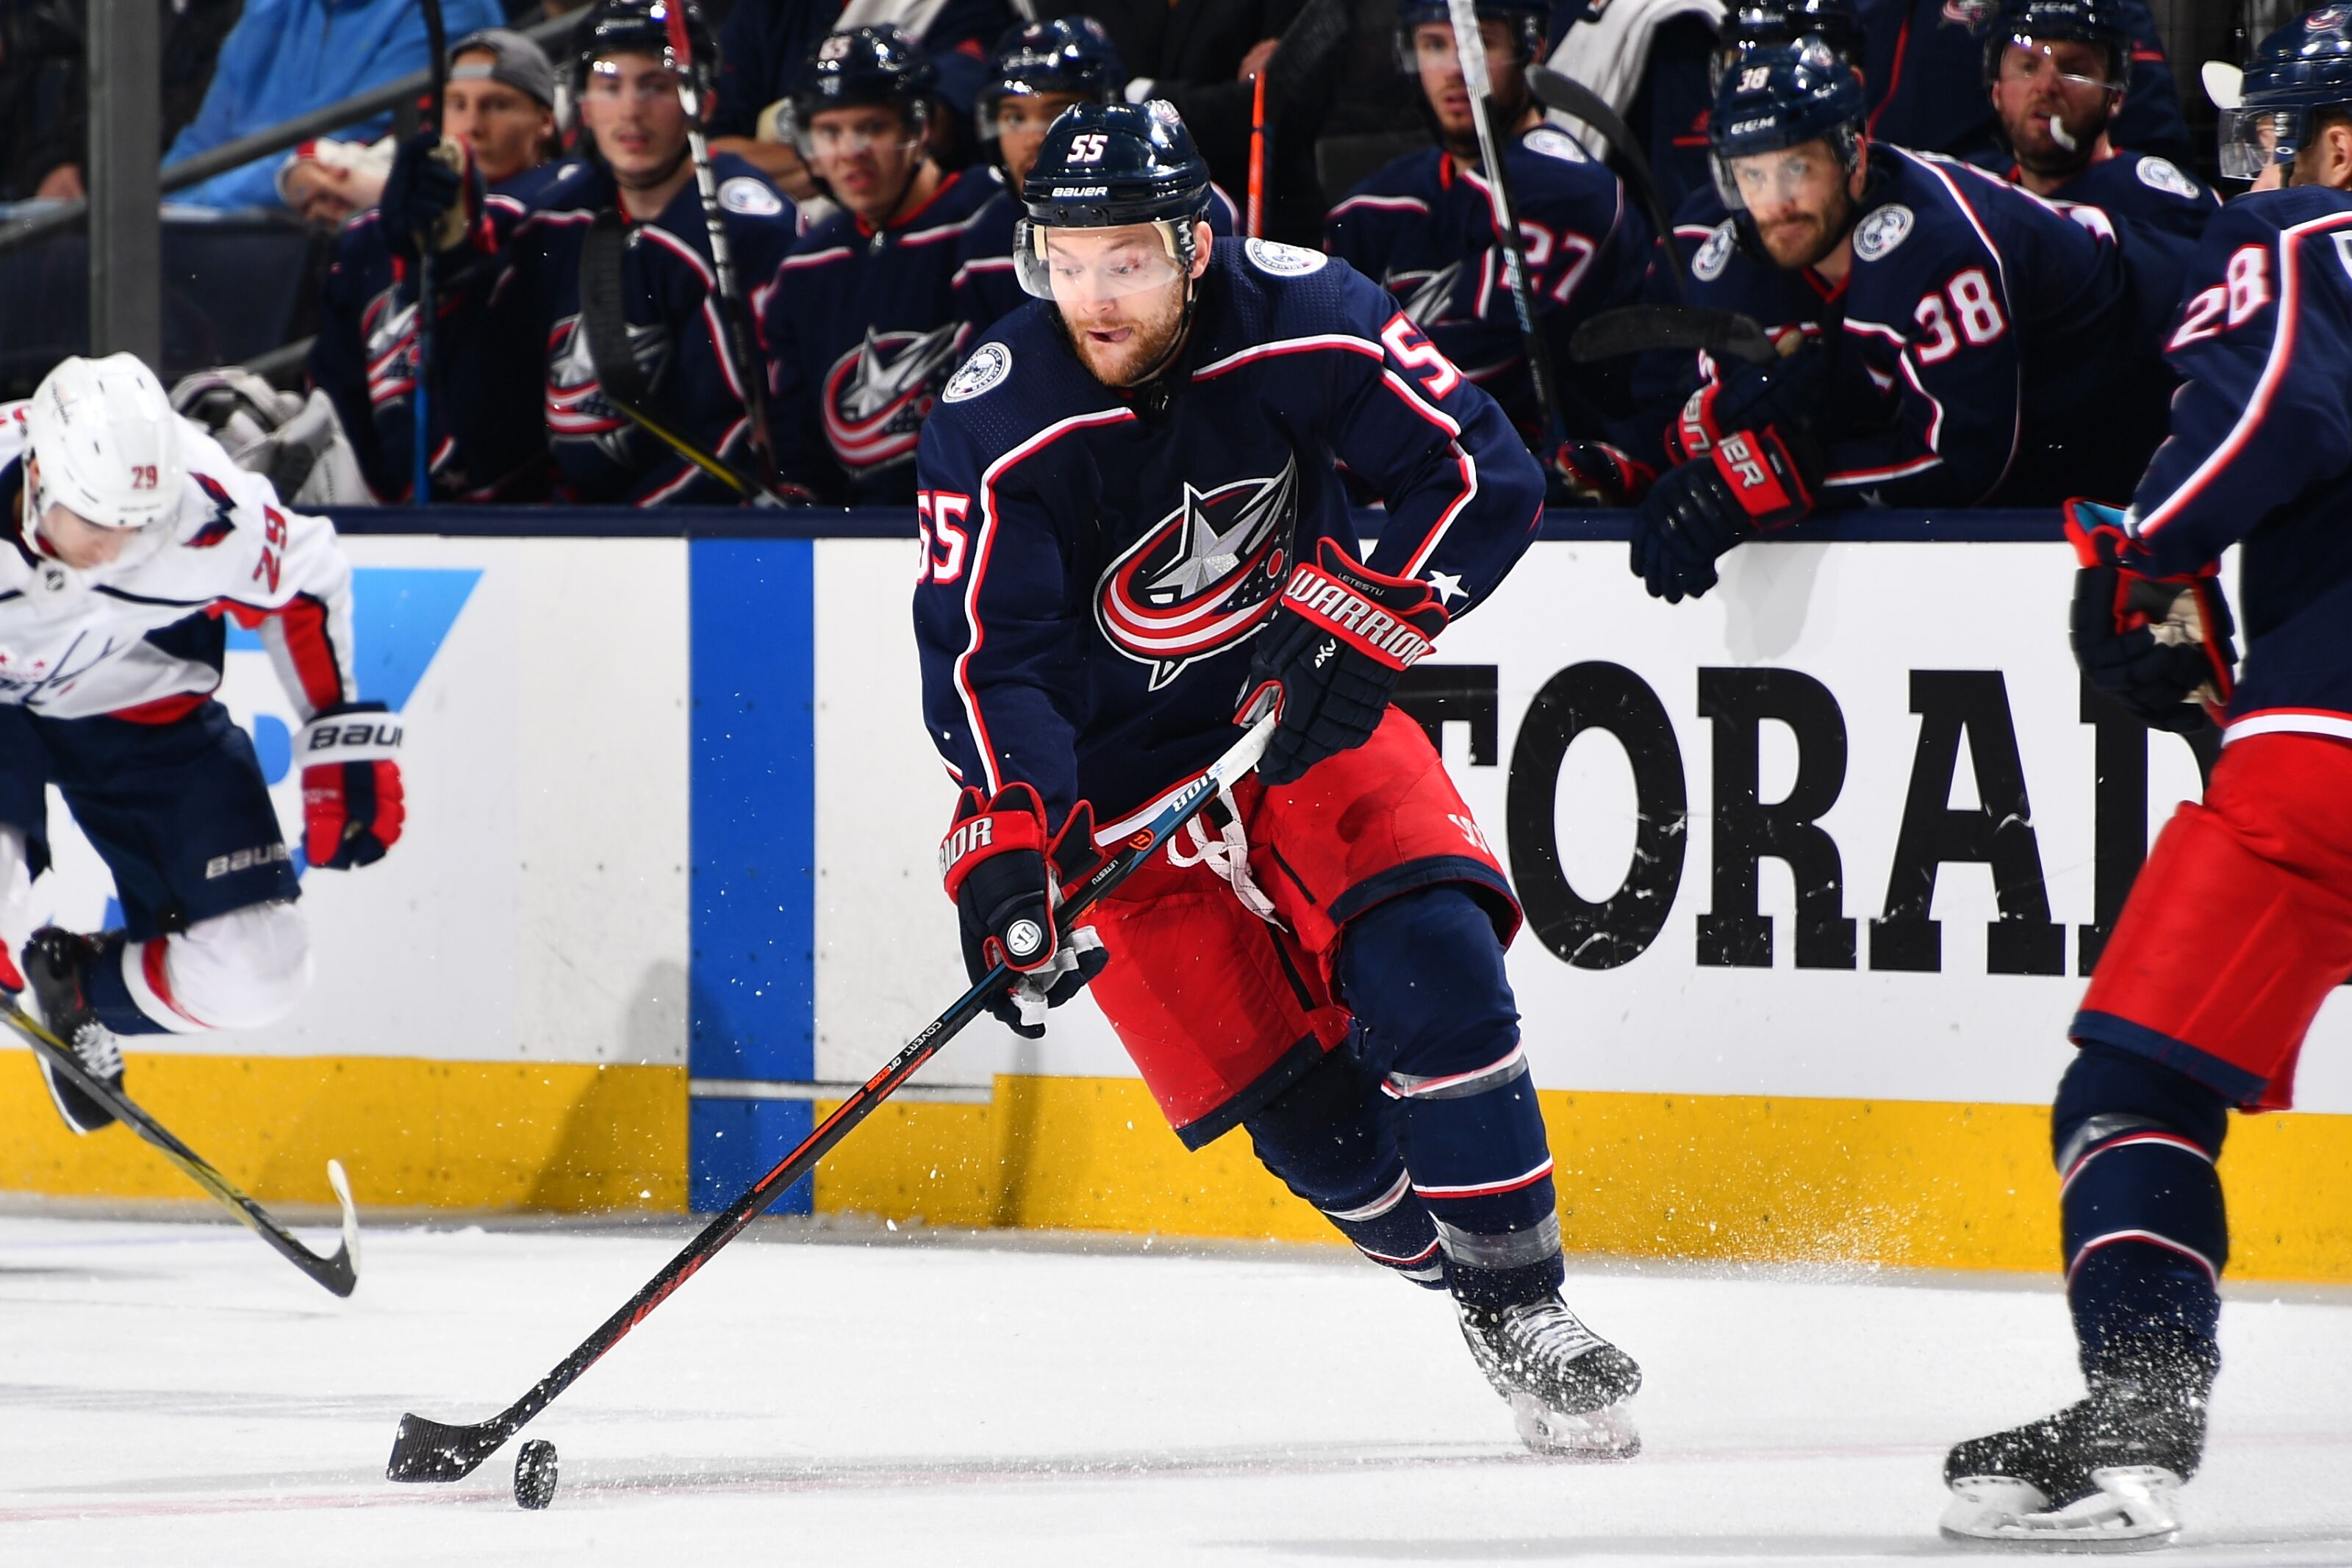 sale retailer 1bfca 61f85 Columbus Blue Jackets: Mark Letestu Returns for his 3rd Stint